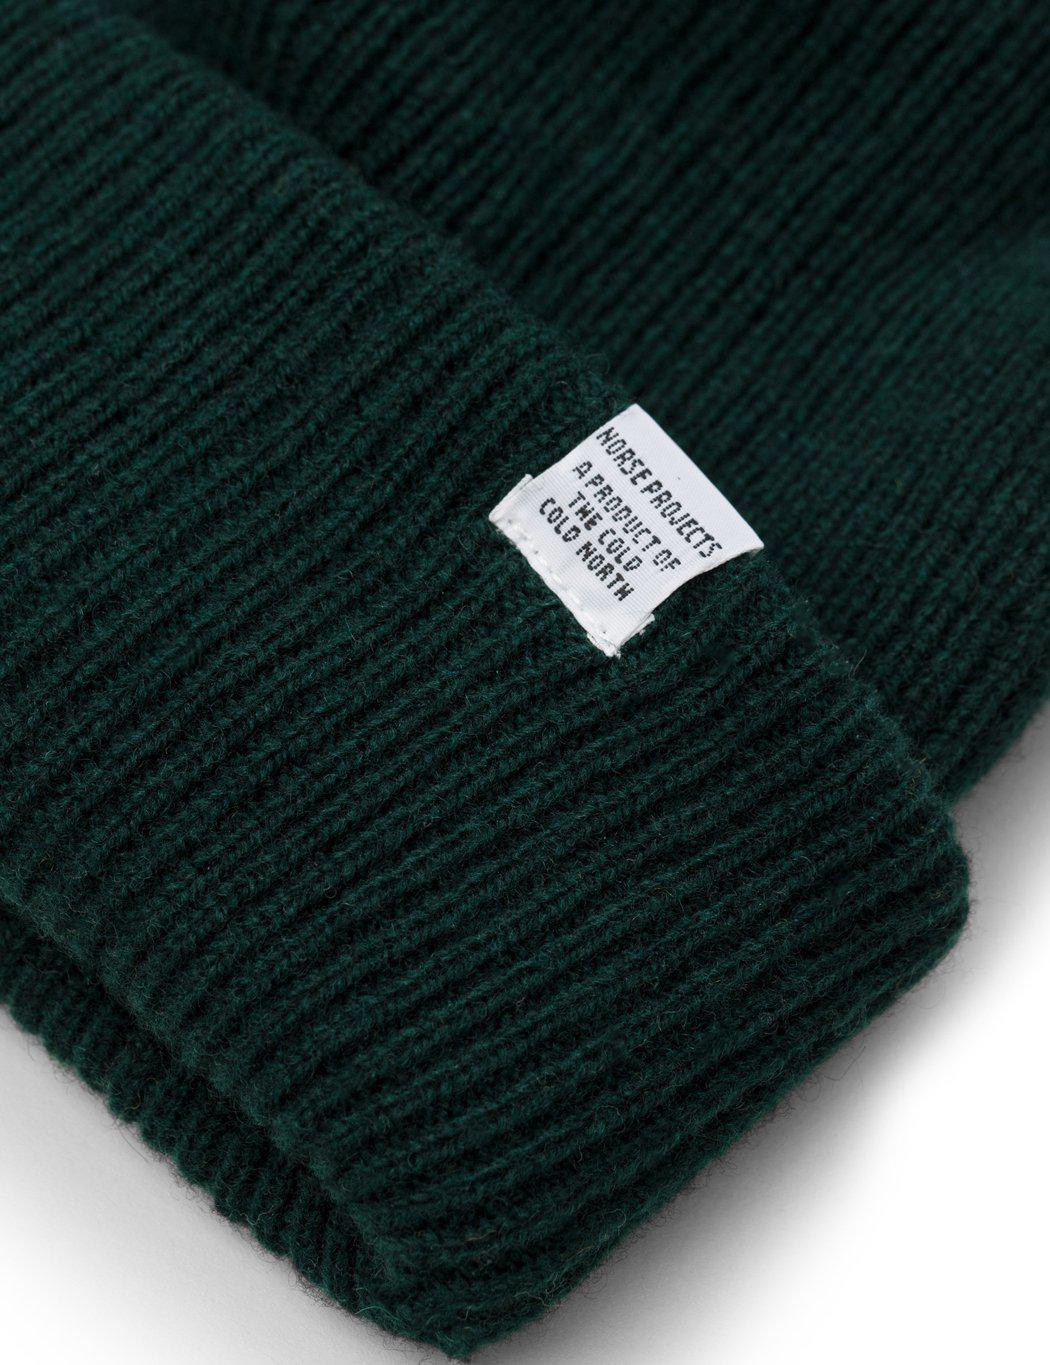 ad1c22d709e Norse Projects Norse Beanie Hat in Green for Men - Lyst